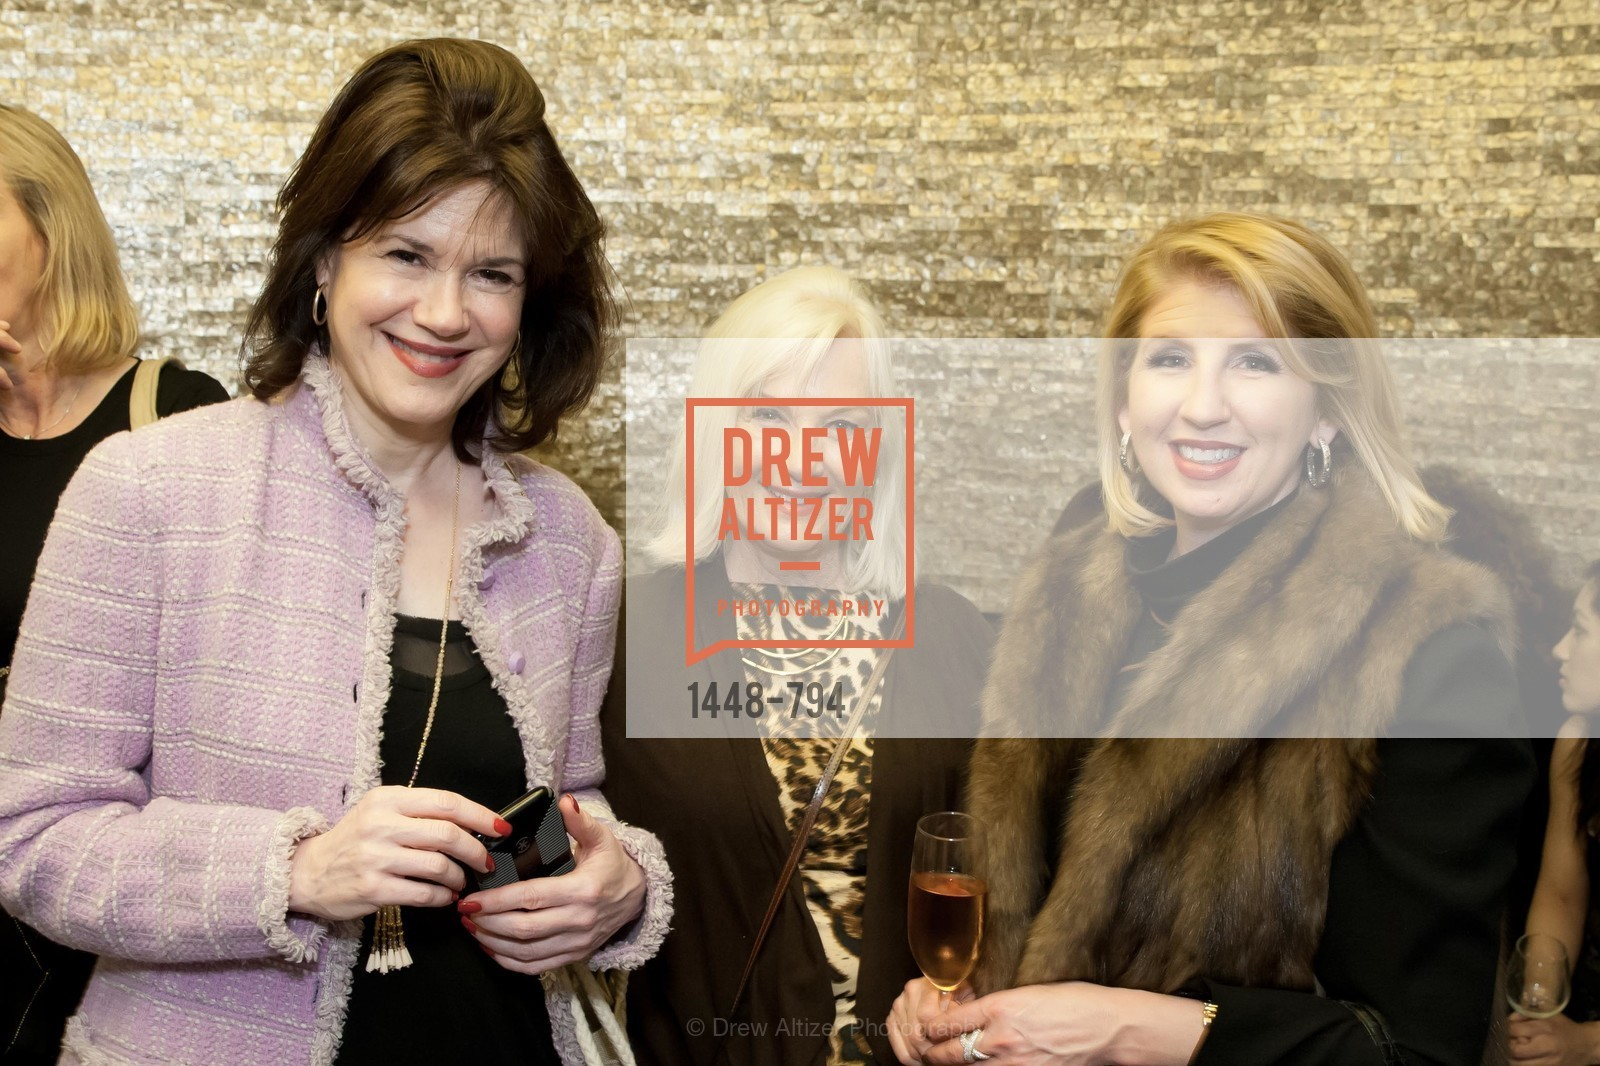 Elaine Mellis, Arlene Inch, Roberta Economidis, EPI CENTER MedSpa Anniversary and Launch of REPLETE - Evening Celebration, US, April 21st, 2015,Drew Altizer, Drew Altizer Photography, full-service agency, private events, San Francisco photographer, photographer california